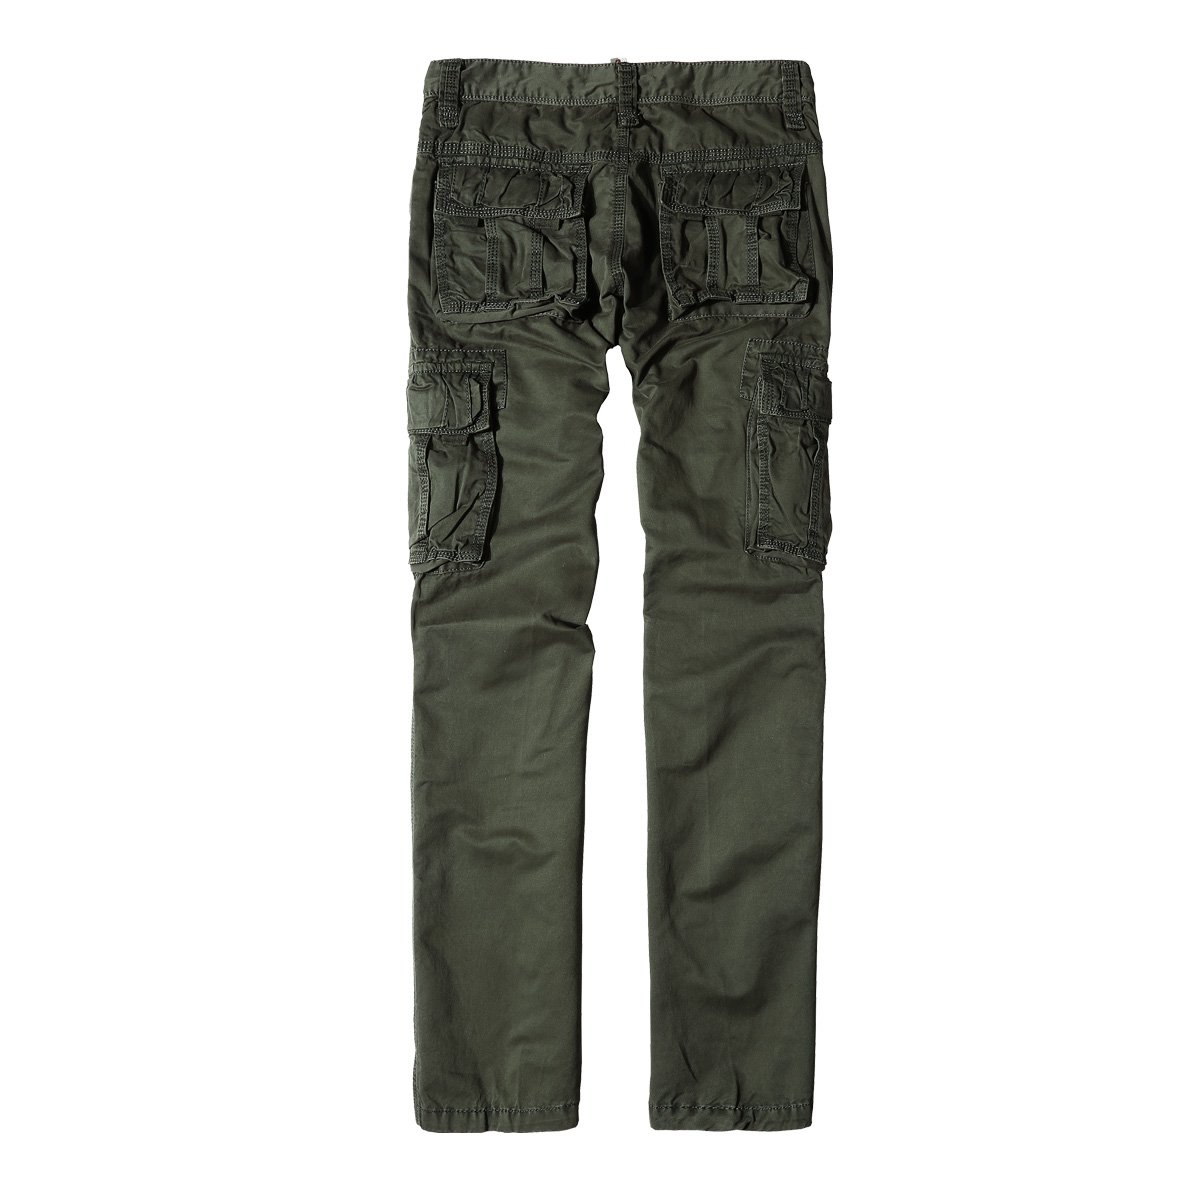 6d9bb482942 TACVASEN Men s Casual Cargo Trousers Relaxed Straight Cotton Work Pants  Multi Pockets  Amazon.com.au  Fashion